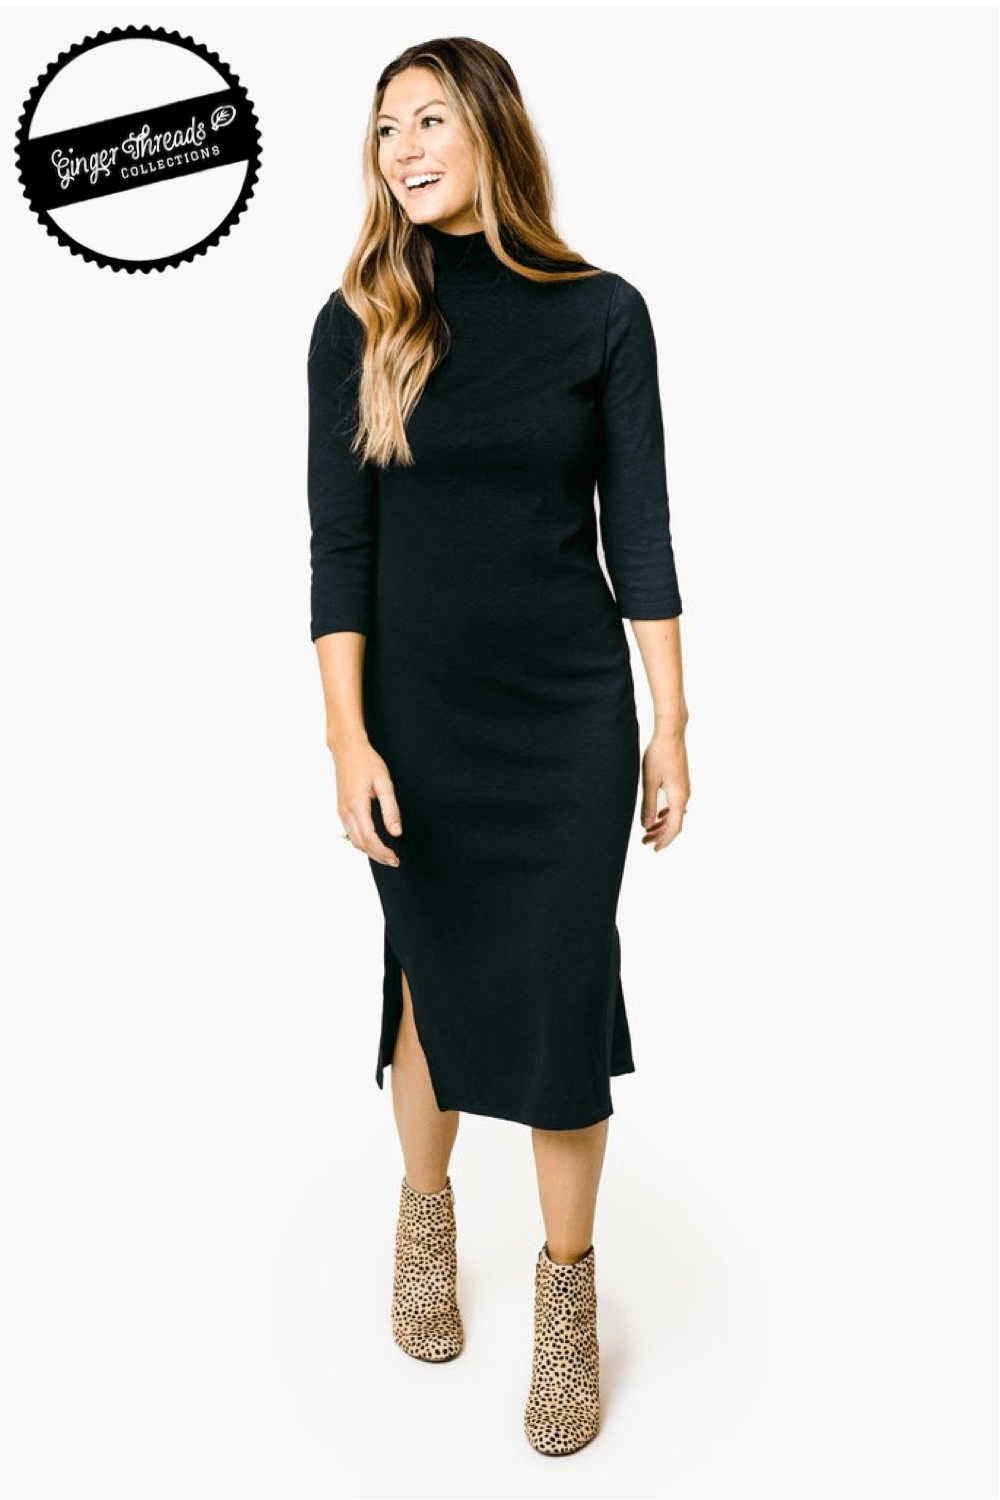 Ginger Threads Collections dress Mock Neck Black Dress